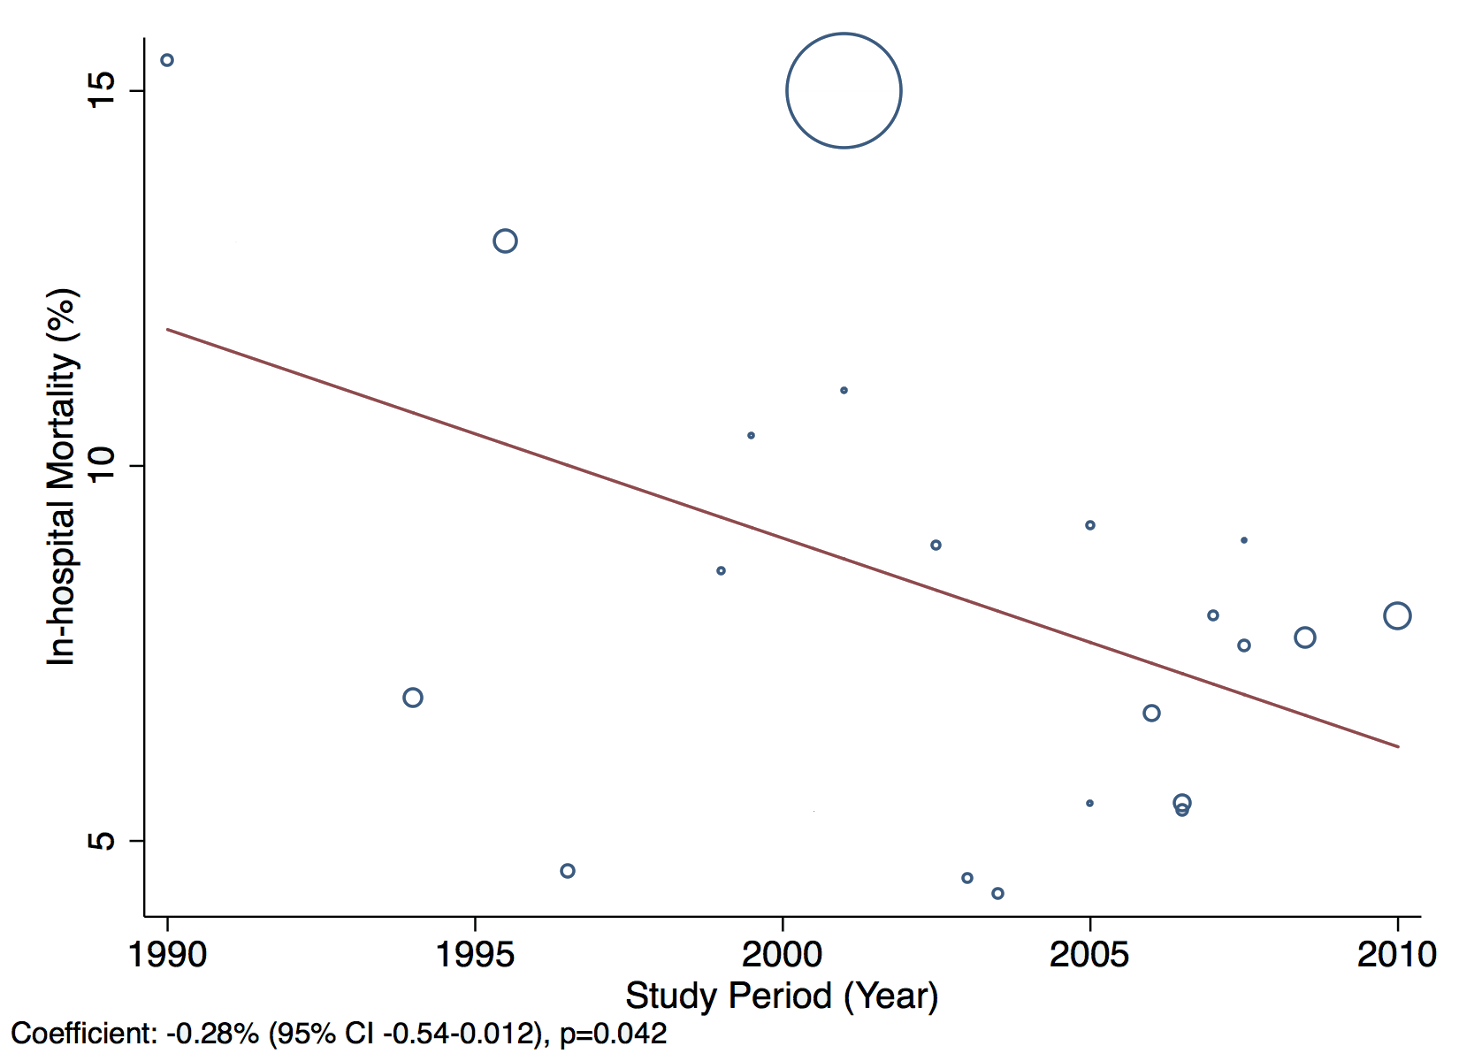 Meta-regression of in-hospital mortality rates against study period.